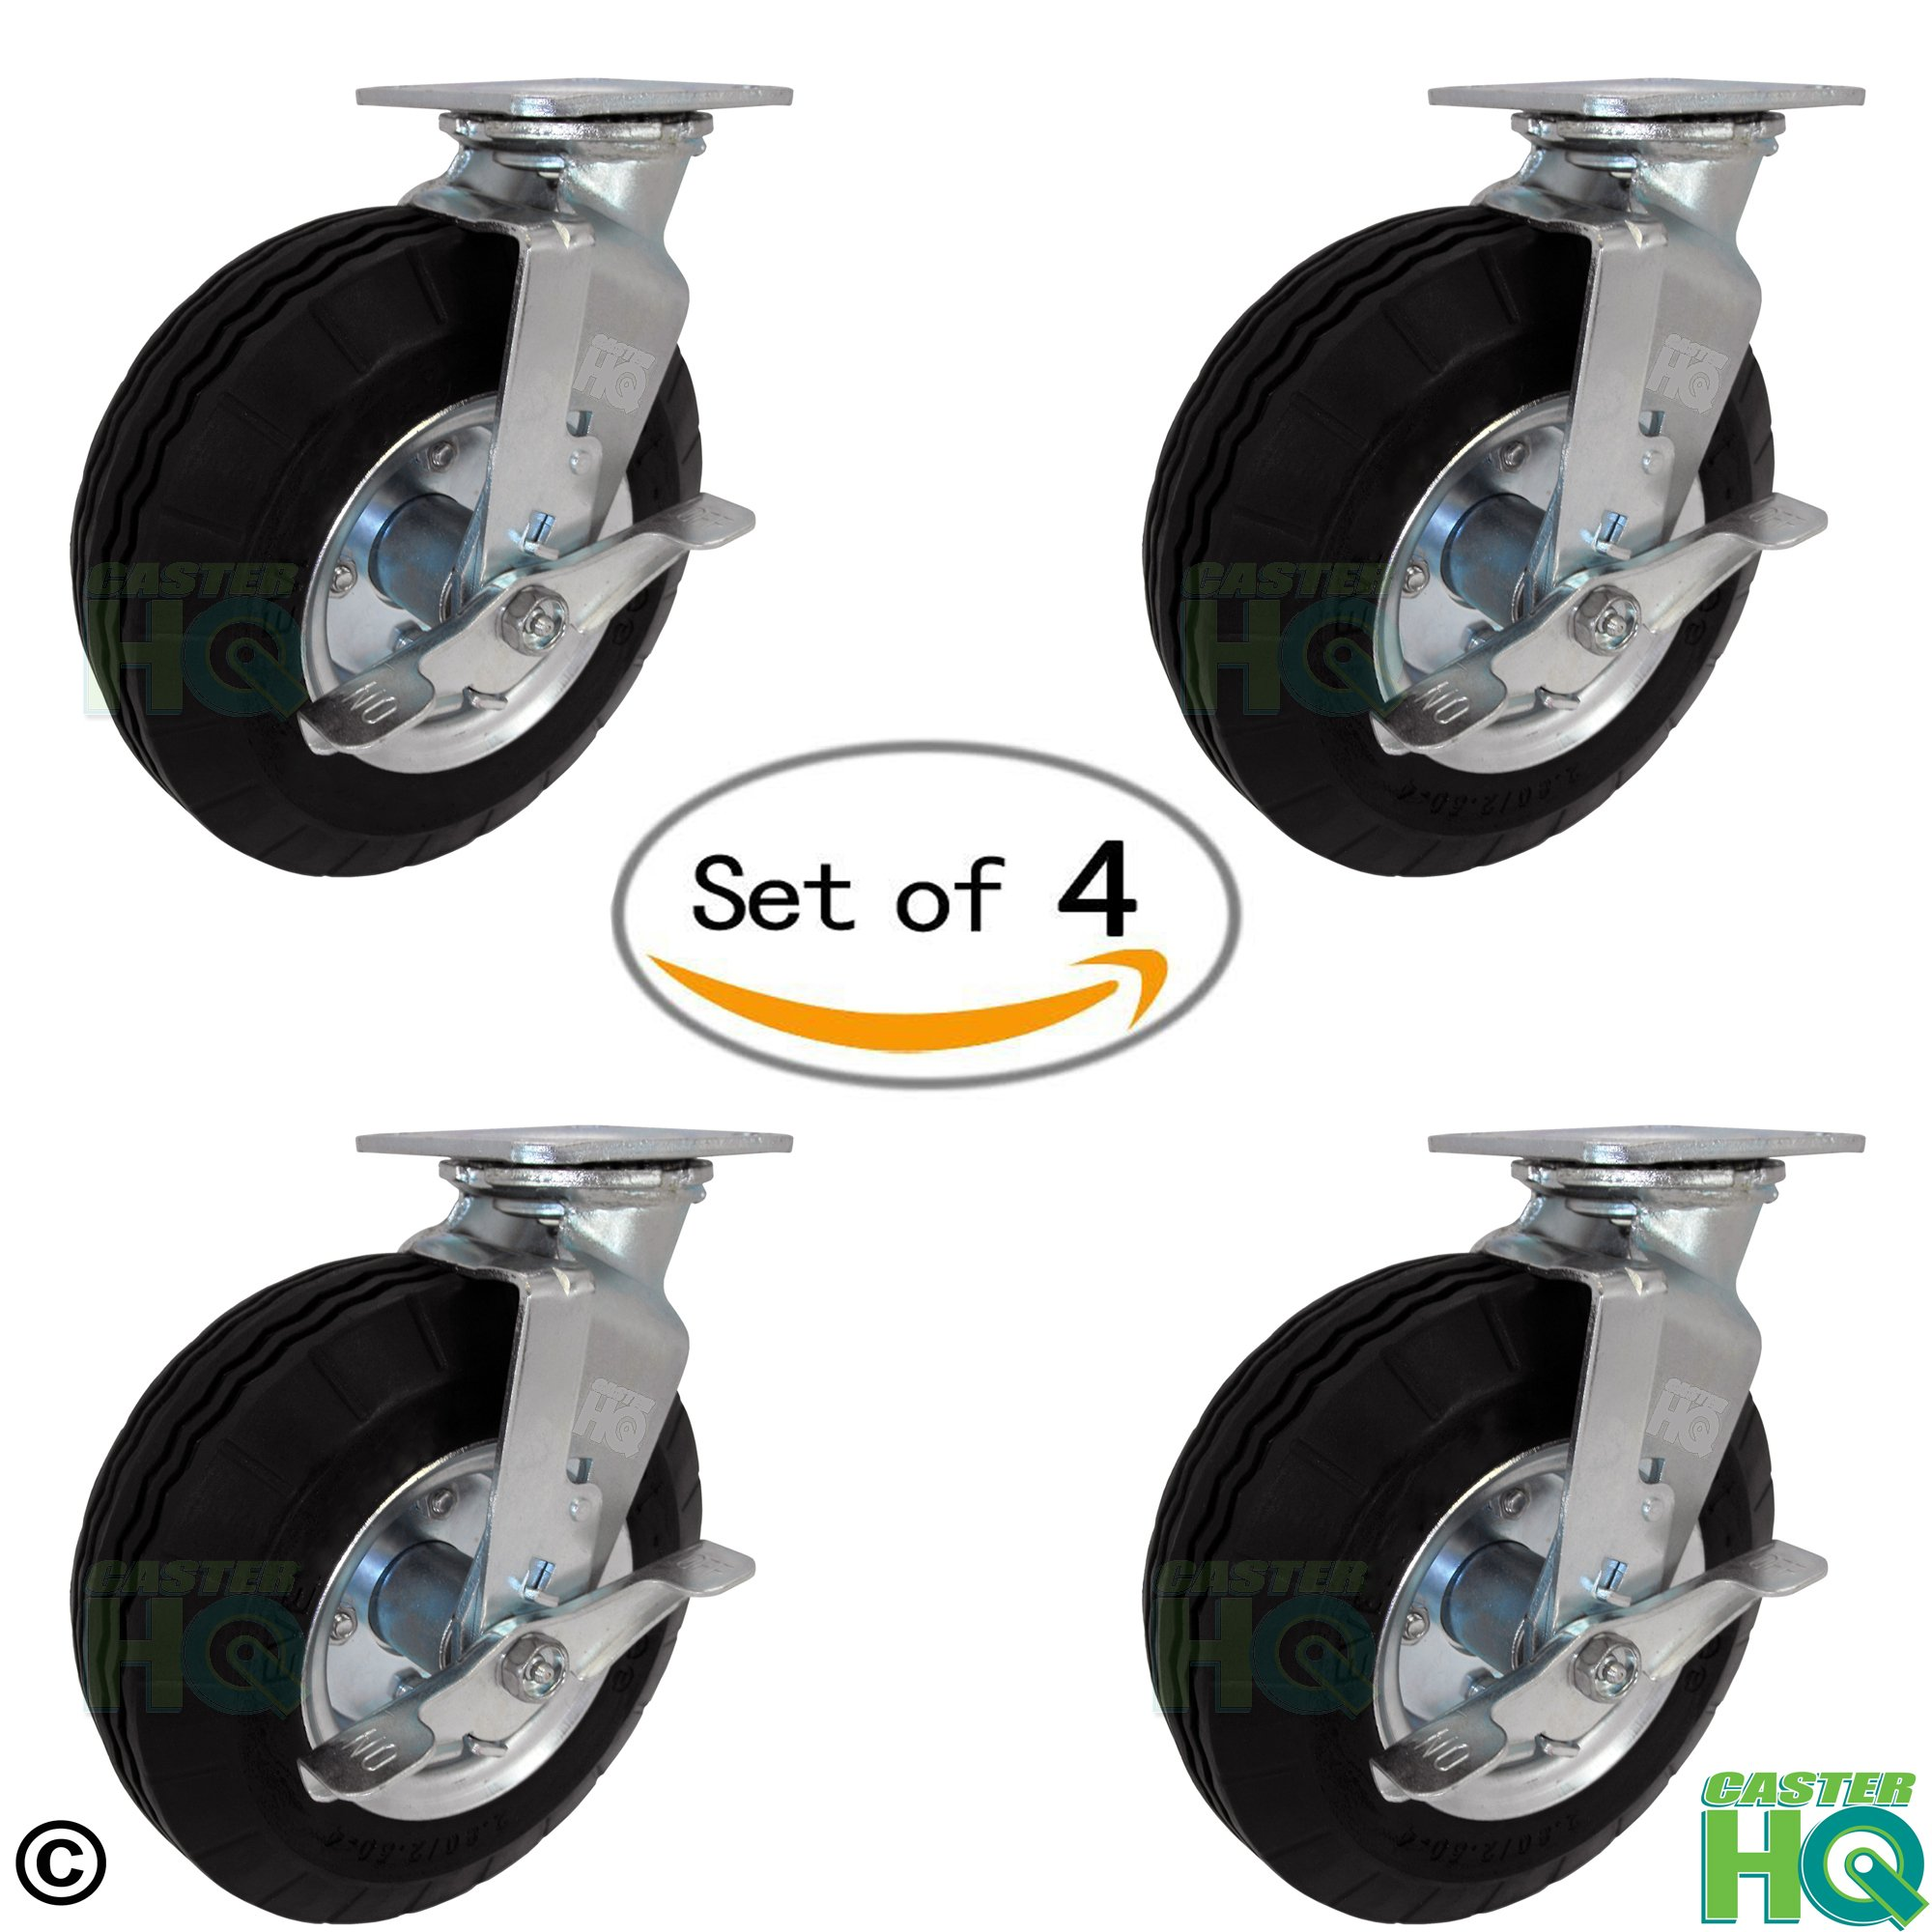 8'' x 2-3/4'' Swivel Plate Caster with Brakes - Flat Free - No Flat Pneumatic Wheel, 1,000 lb Capacity Set of 4 - CasterHQ Brand